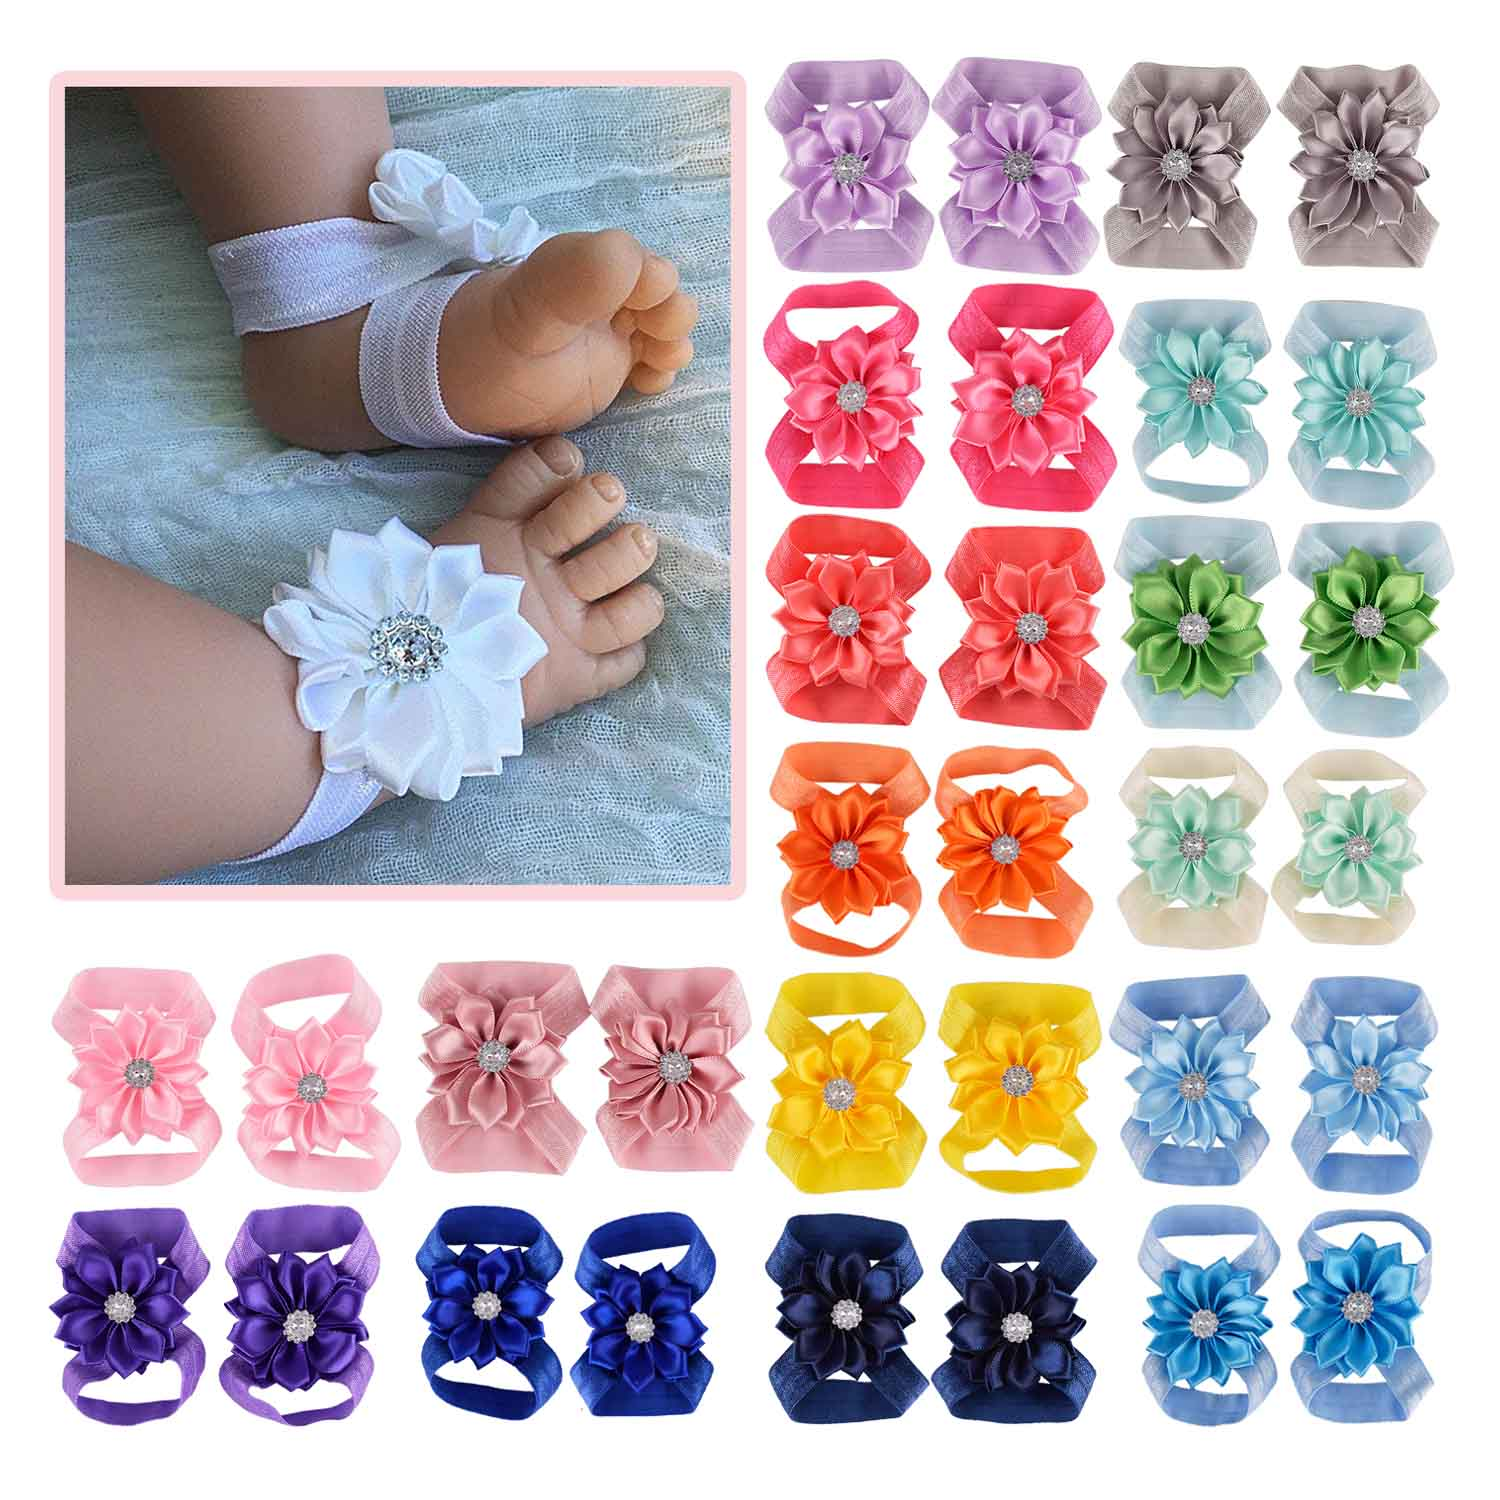 Baby Barefoot Sandals With Ribbon Flower Newborn Sandals Baptism Shoes Baby Girl Shoe Photo Props Birthday Shoes Newborn To 12M